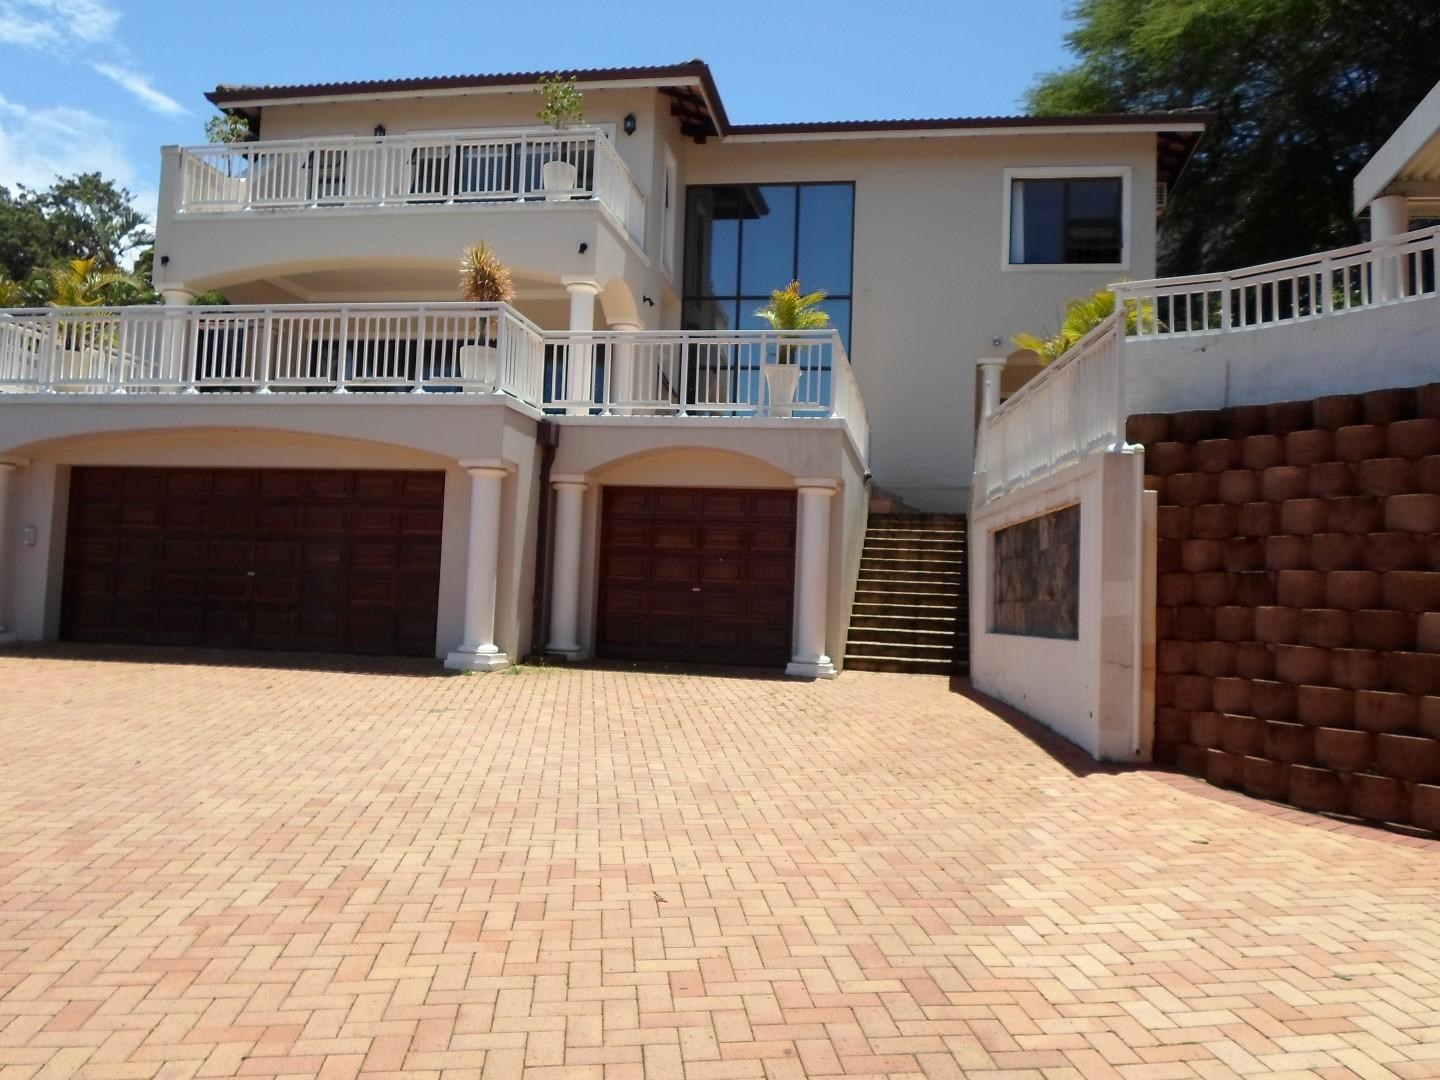 4 Bedroom House for Sale in La Lucia